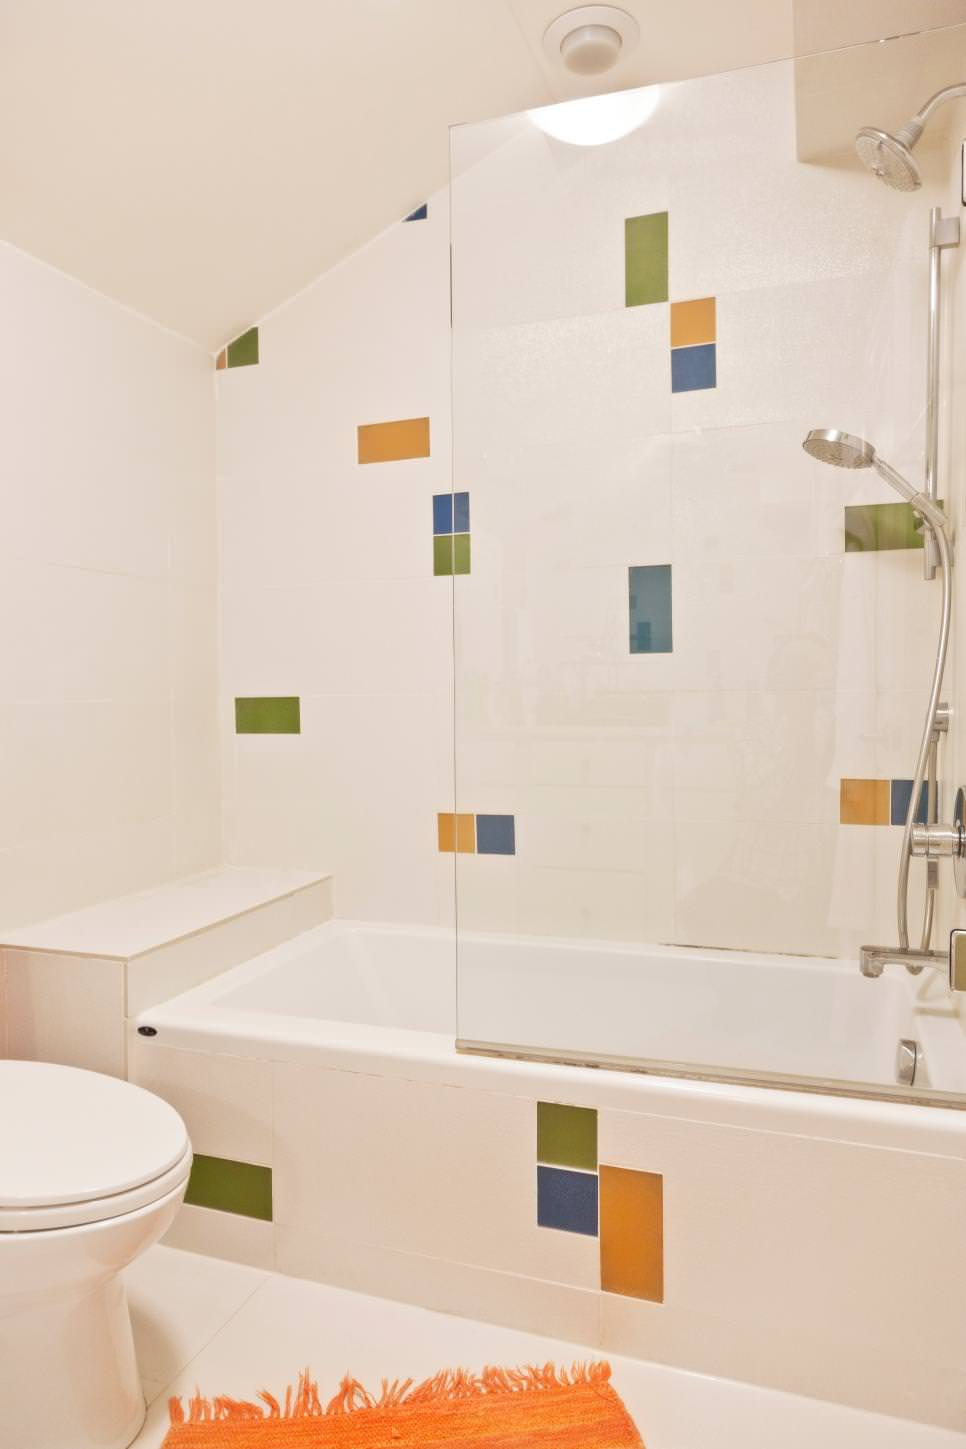 multicolored accents bathtub tiles design